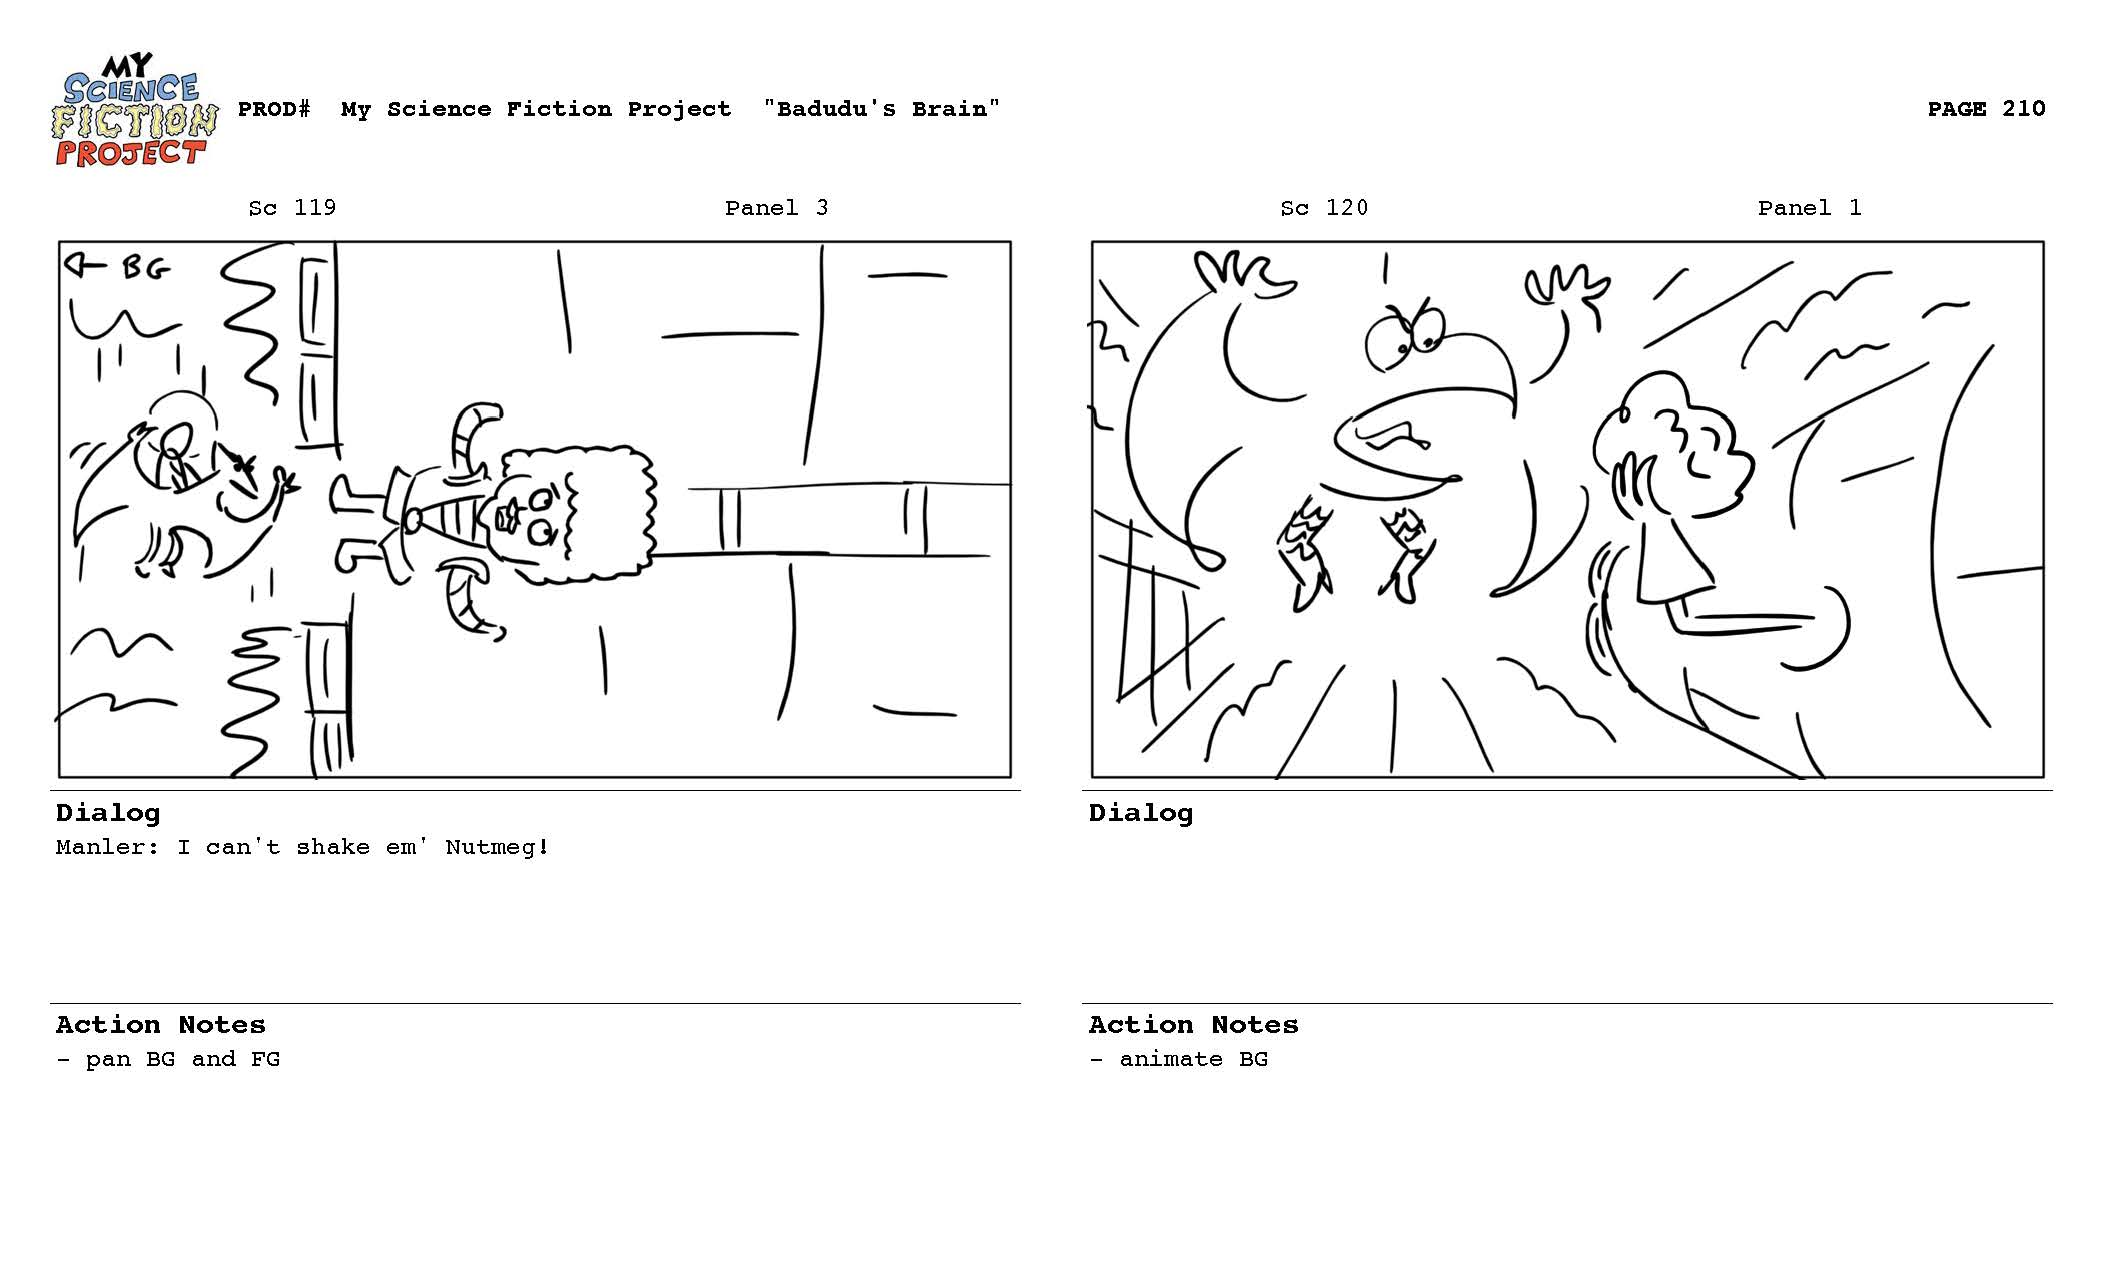 My_Science_Fiction_Project_SB_083112_reduced_Page_210.jpg